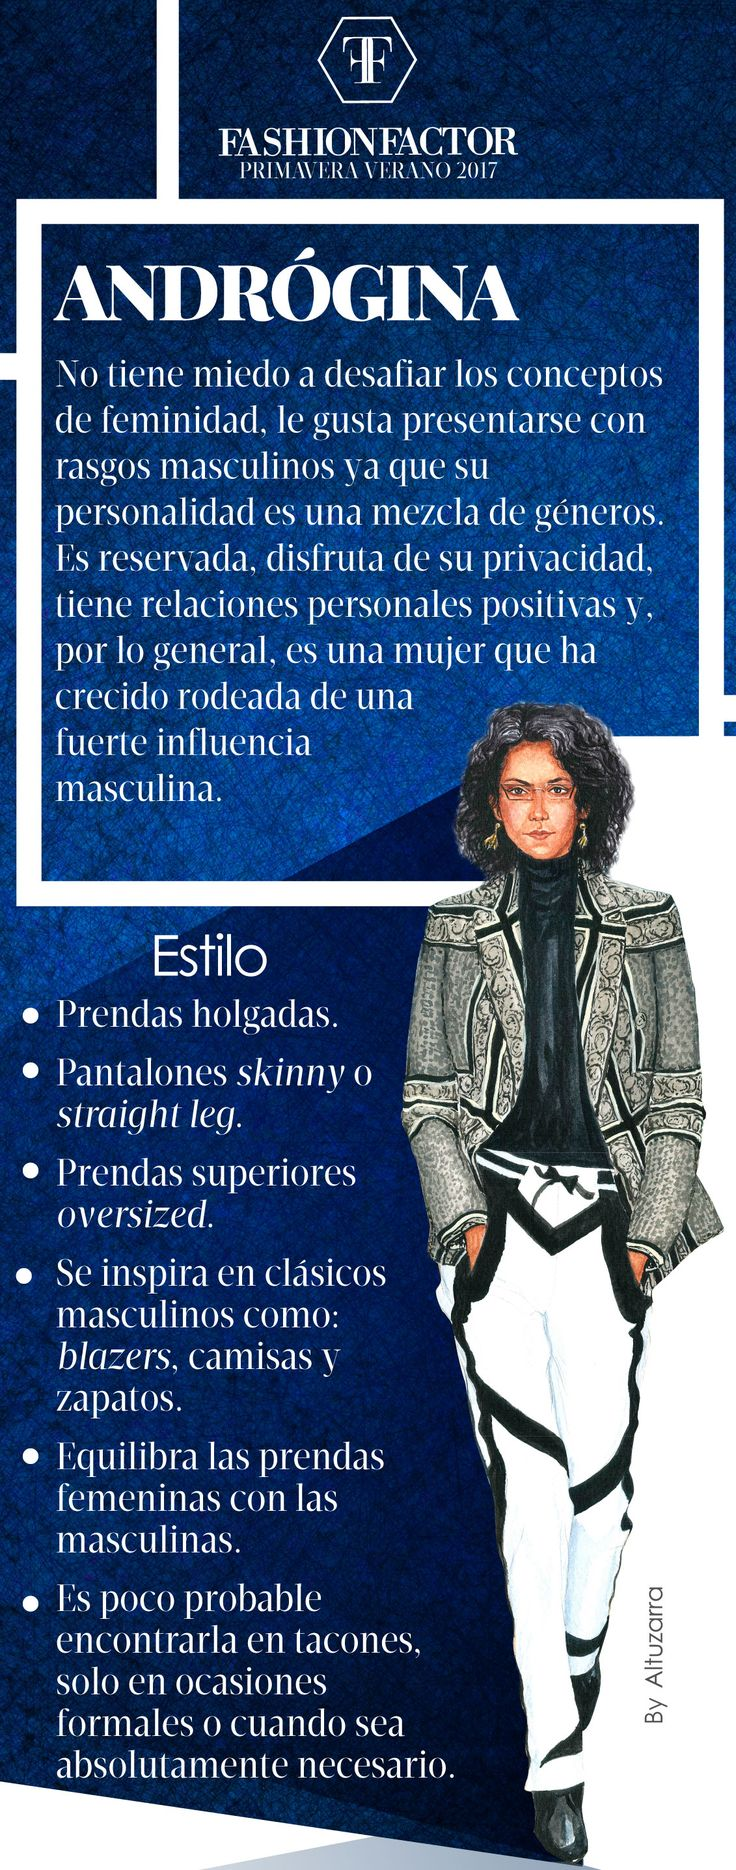 Estilo Andrógina - Identifica tu estilo - Fashion Factor Revista Digital